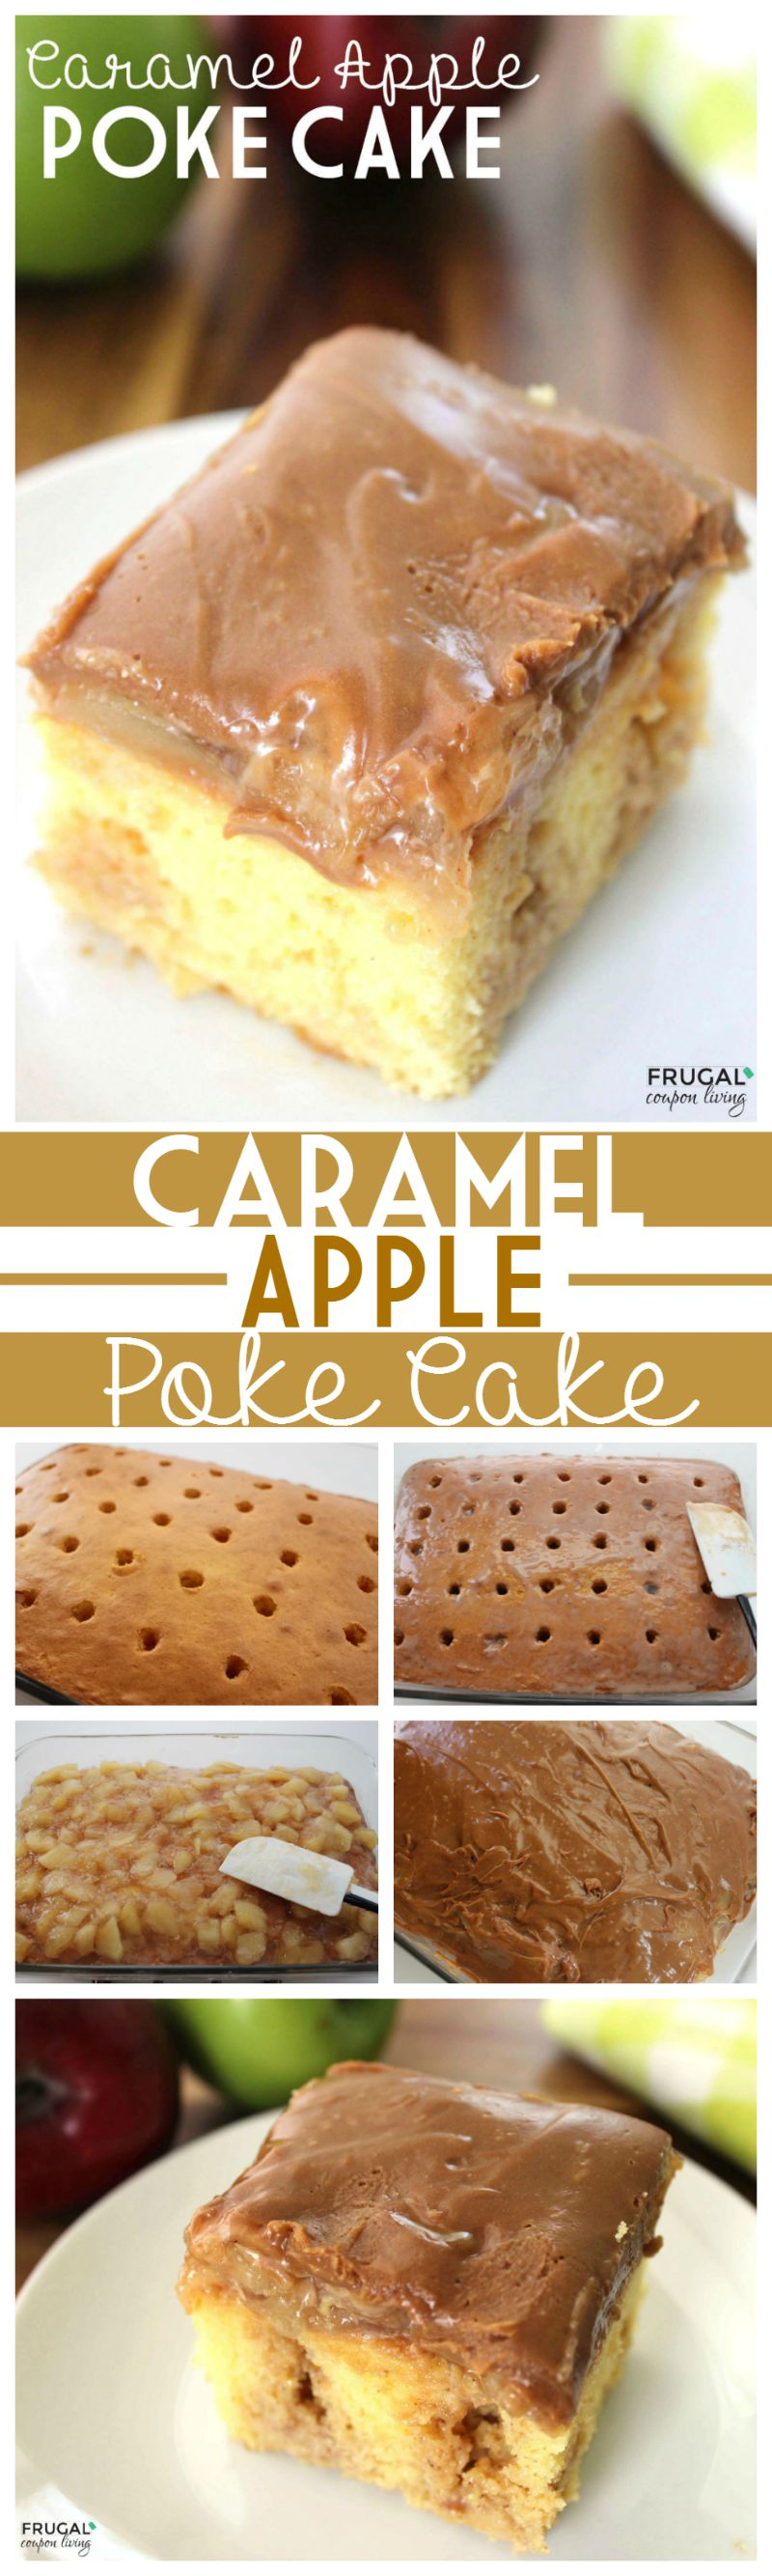 caramel-apple-poke-cake-Collage-frugal-coupon-living